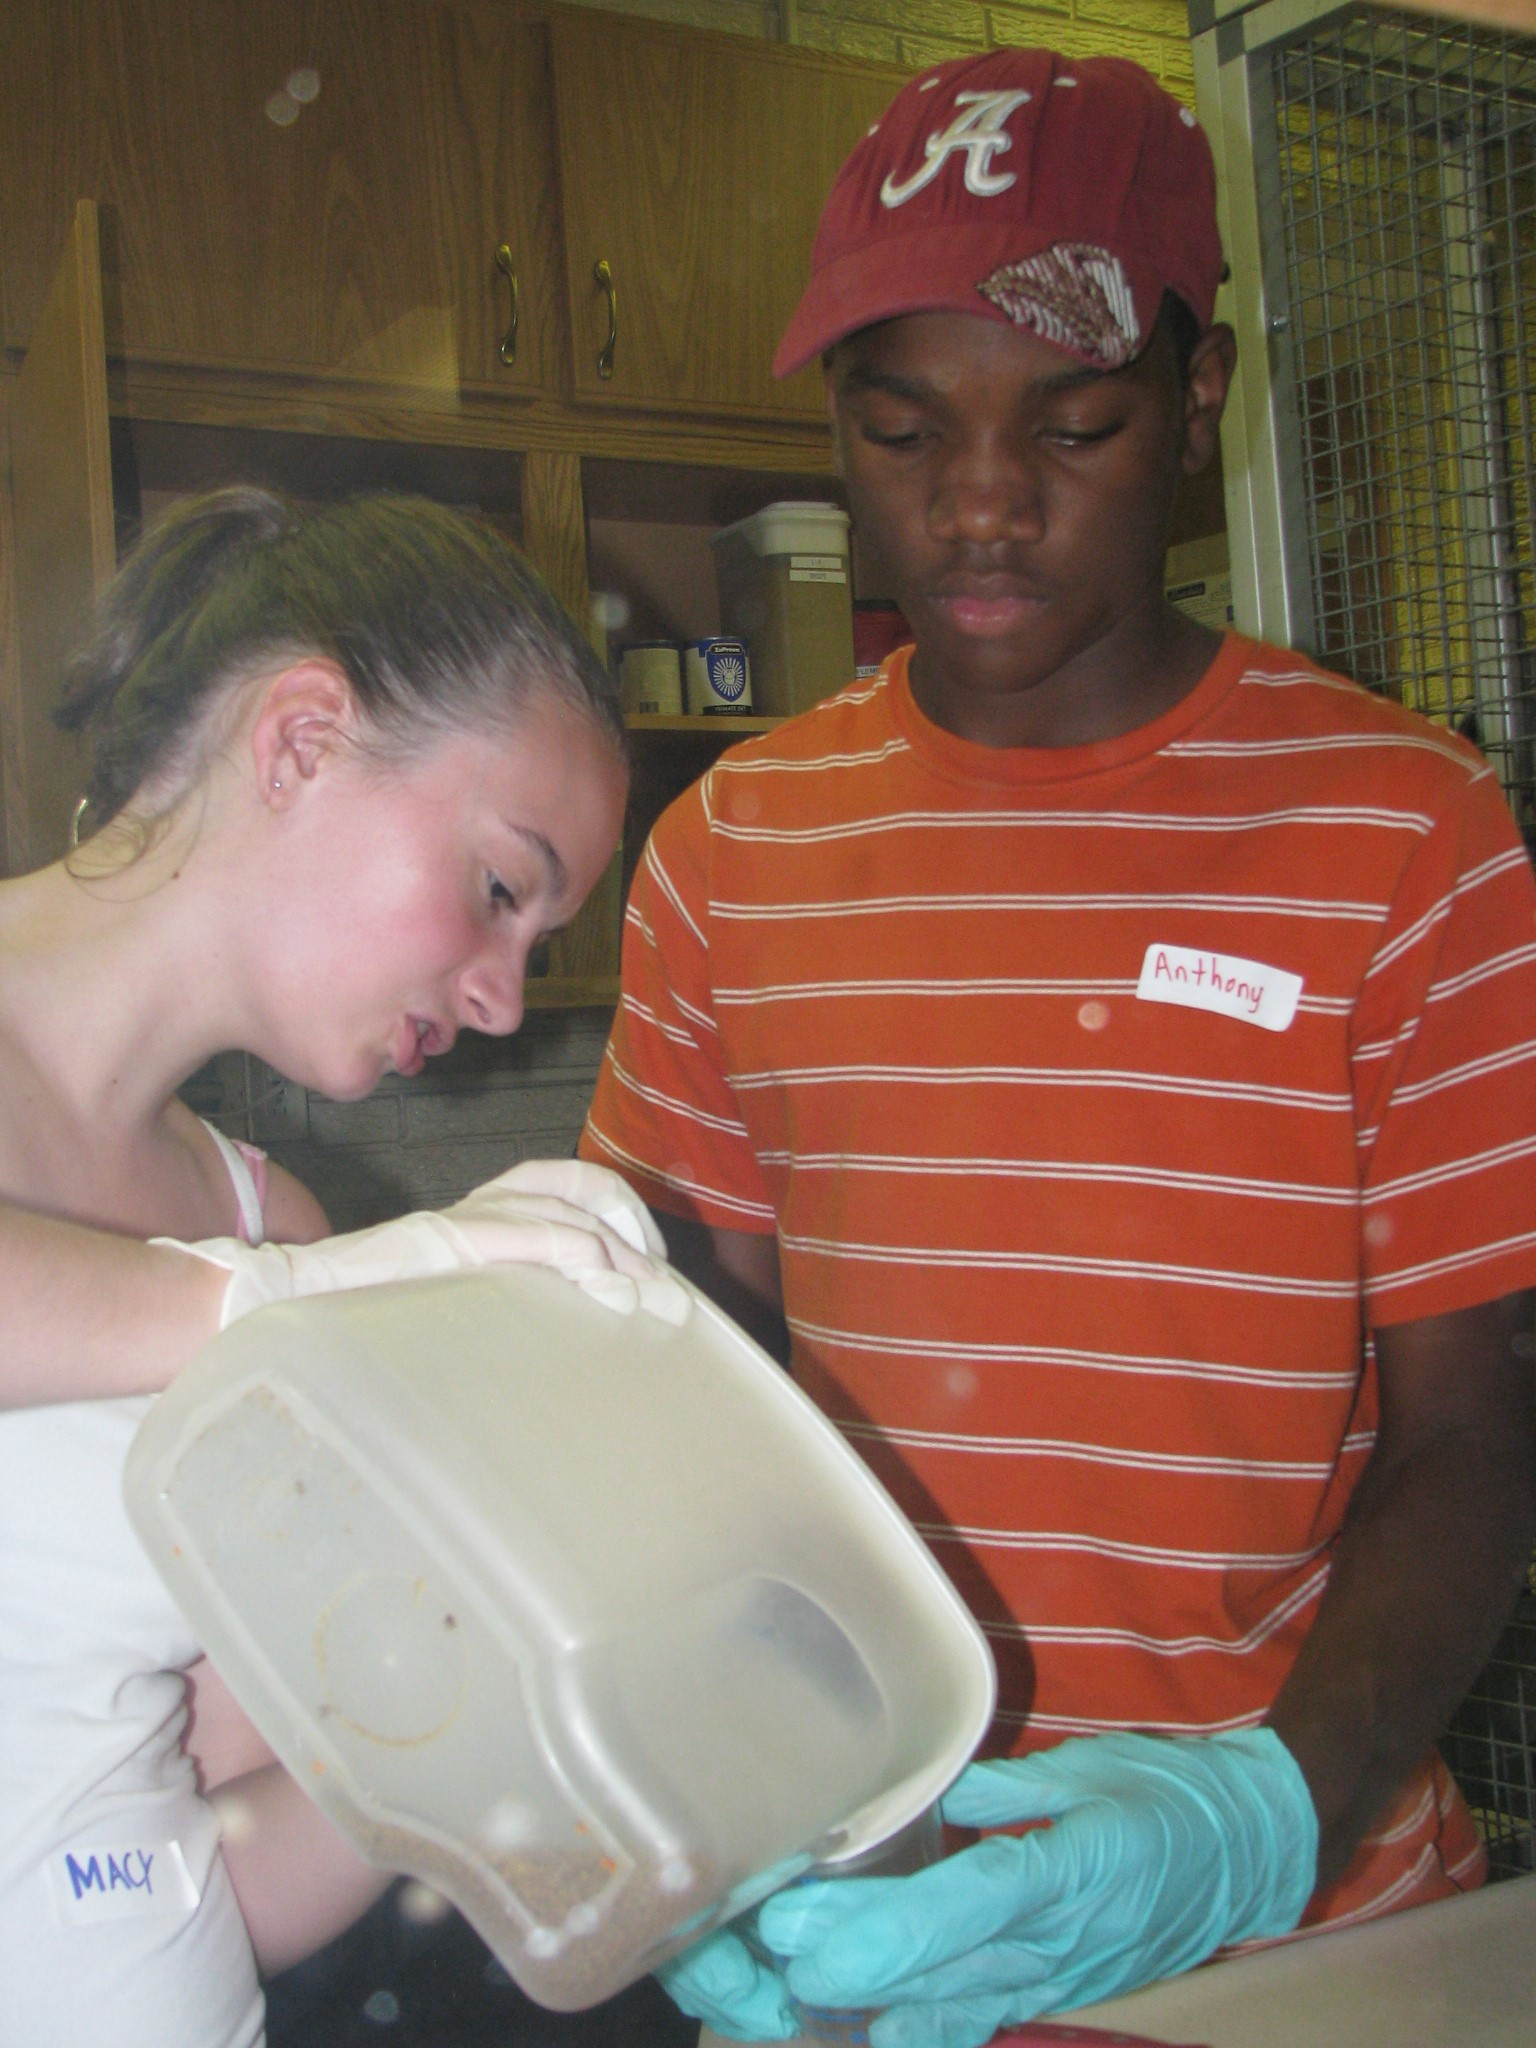 Macy and Anthony prepping trays.JPG